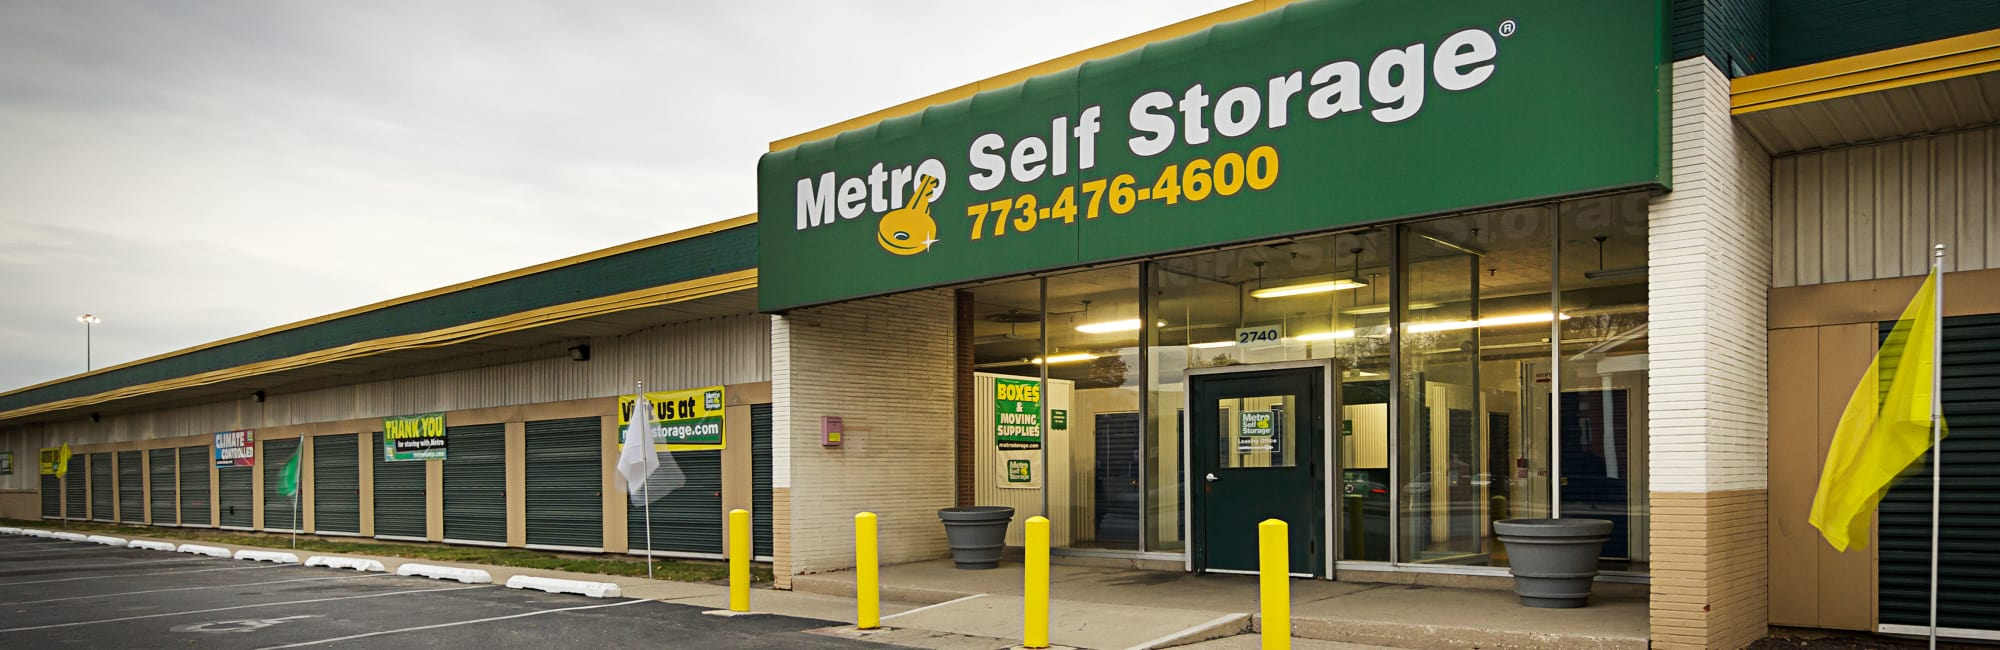 Metro Self Storage in Chicago, IL